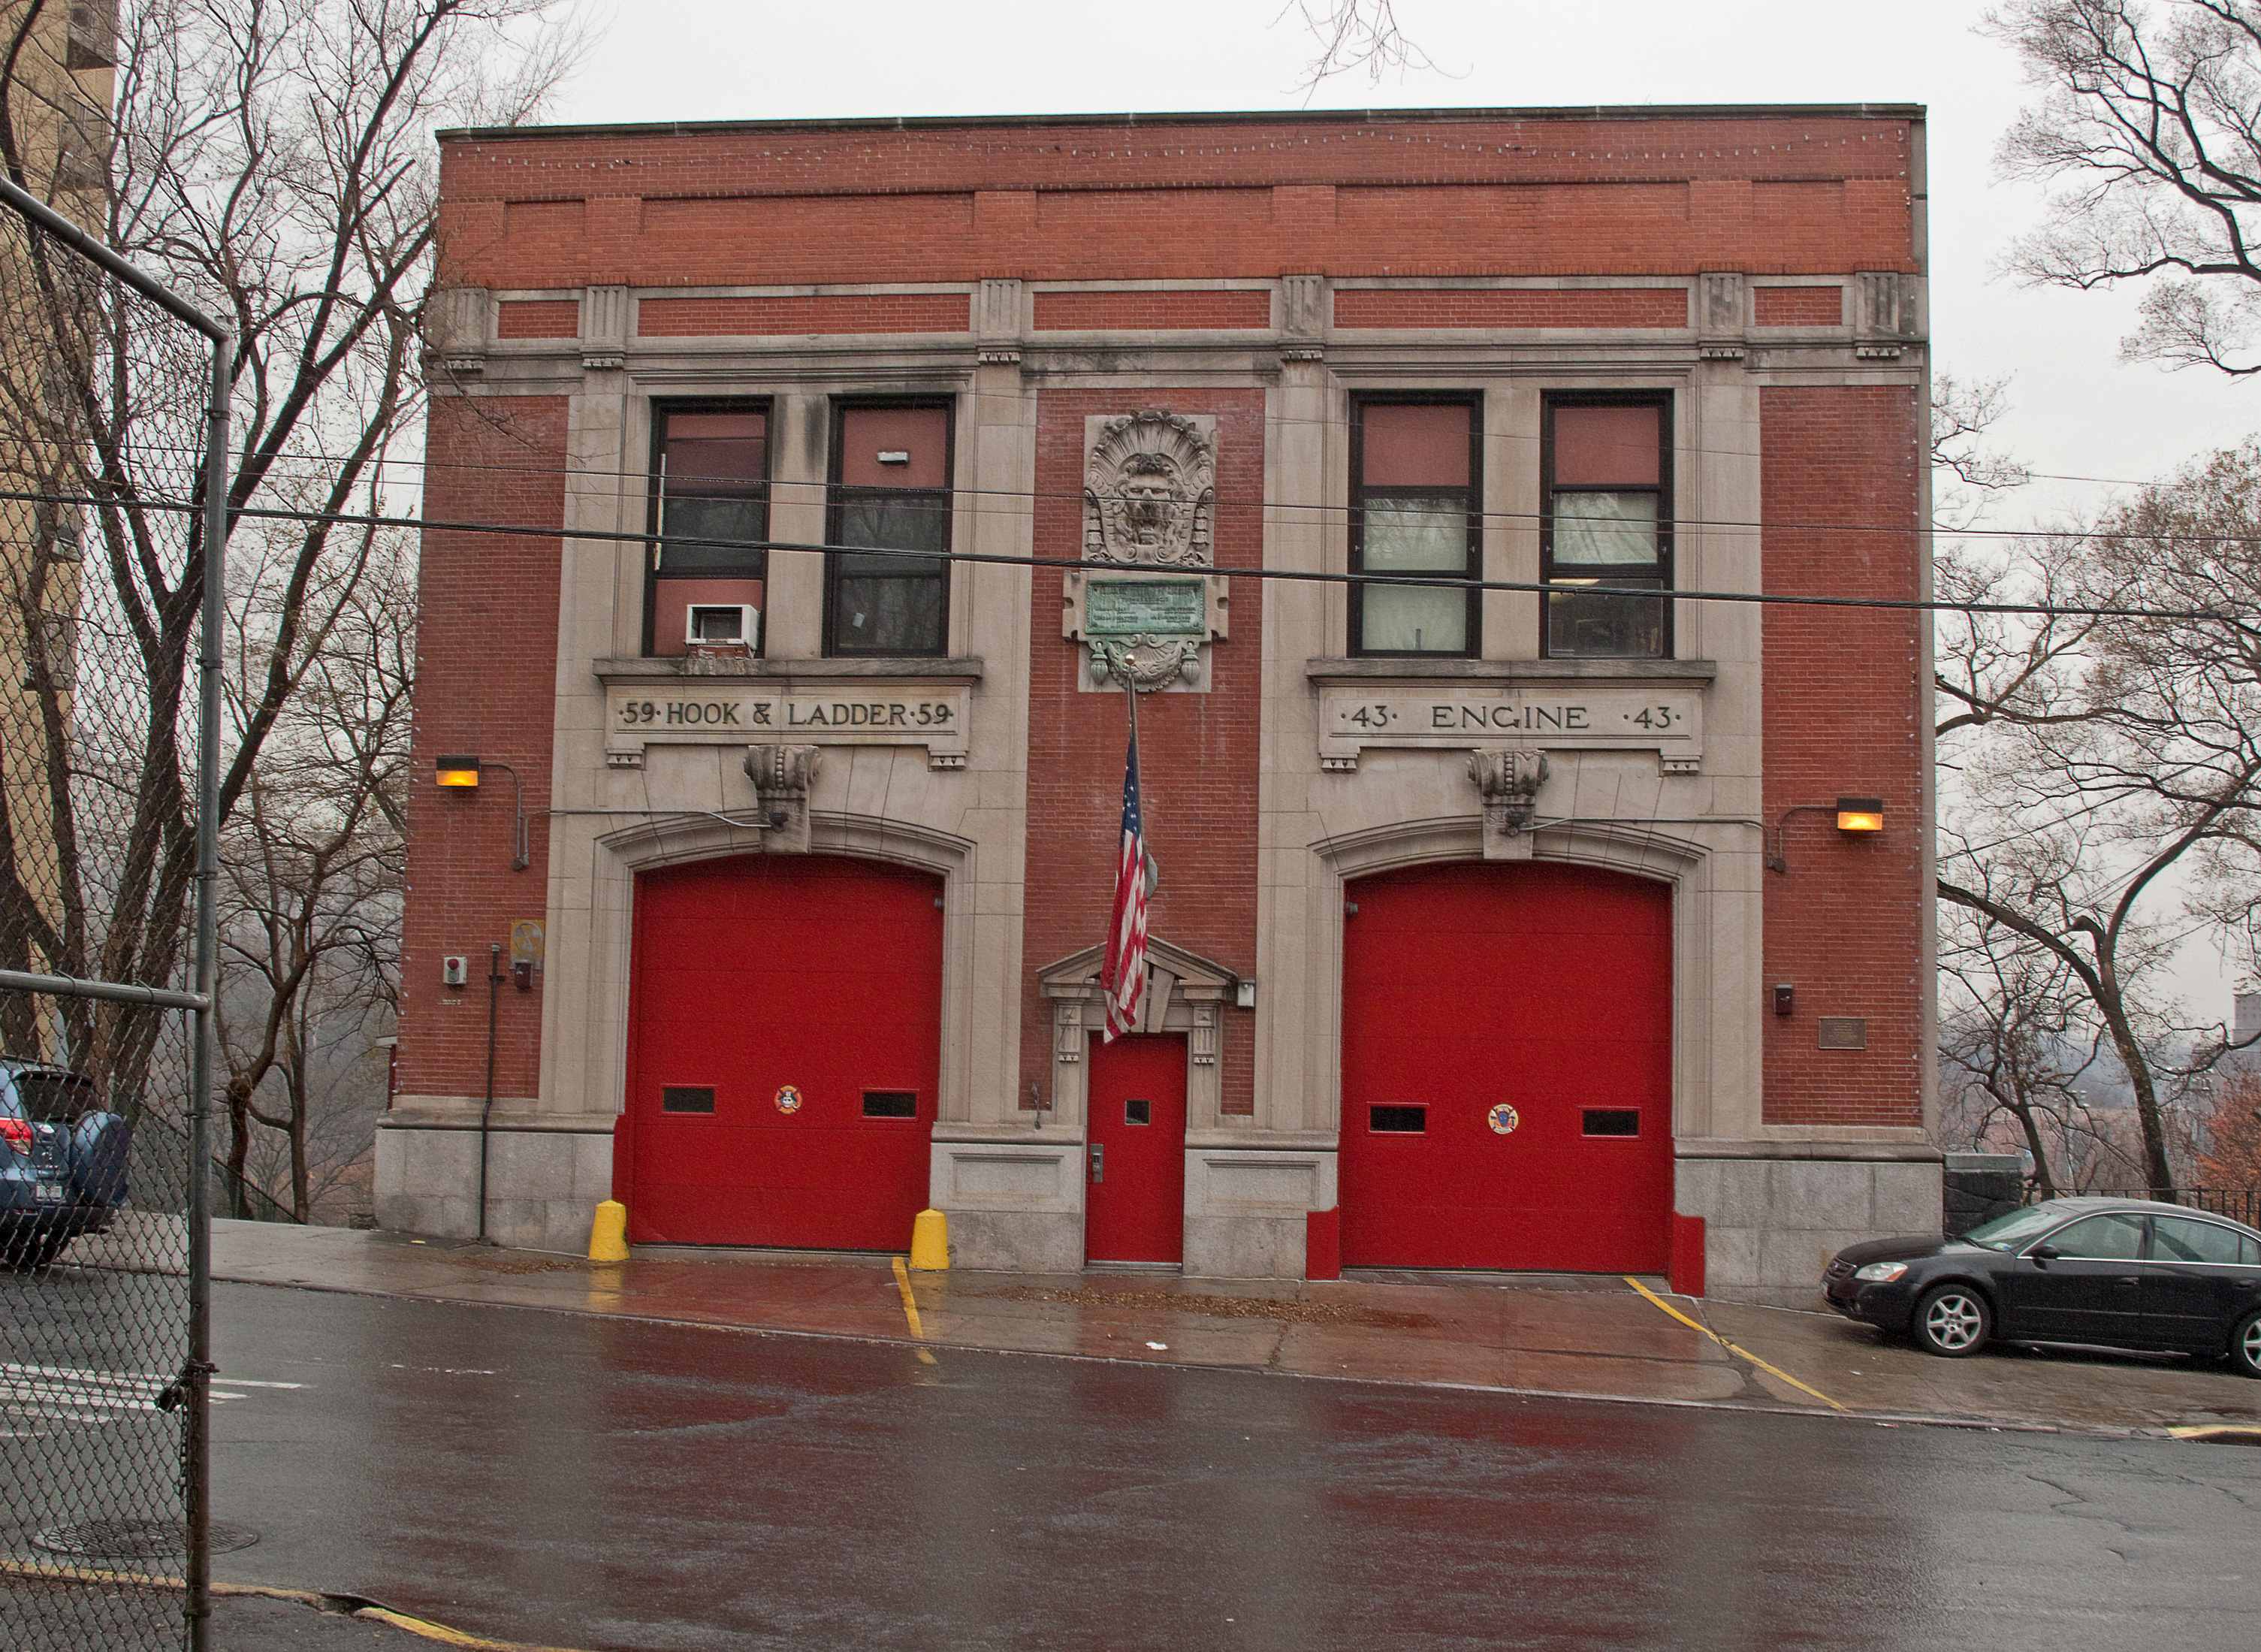 The quarters of Engine 43 and Ladder 59, located in Morris Heights Bronx NYC